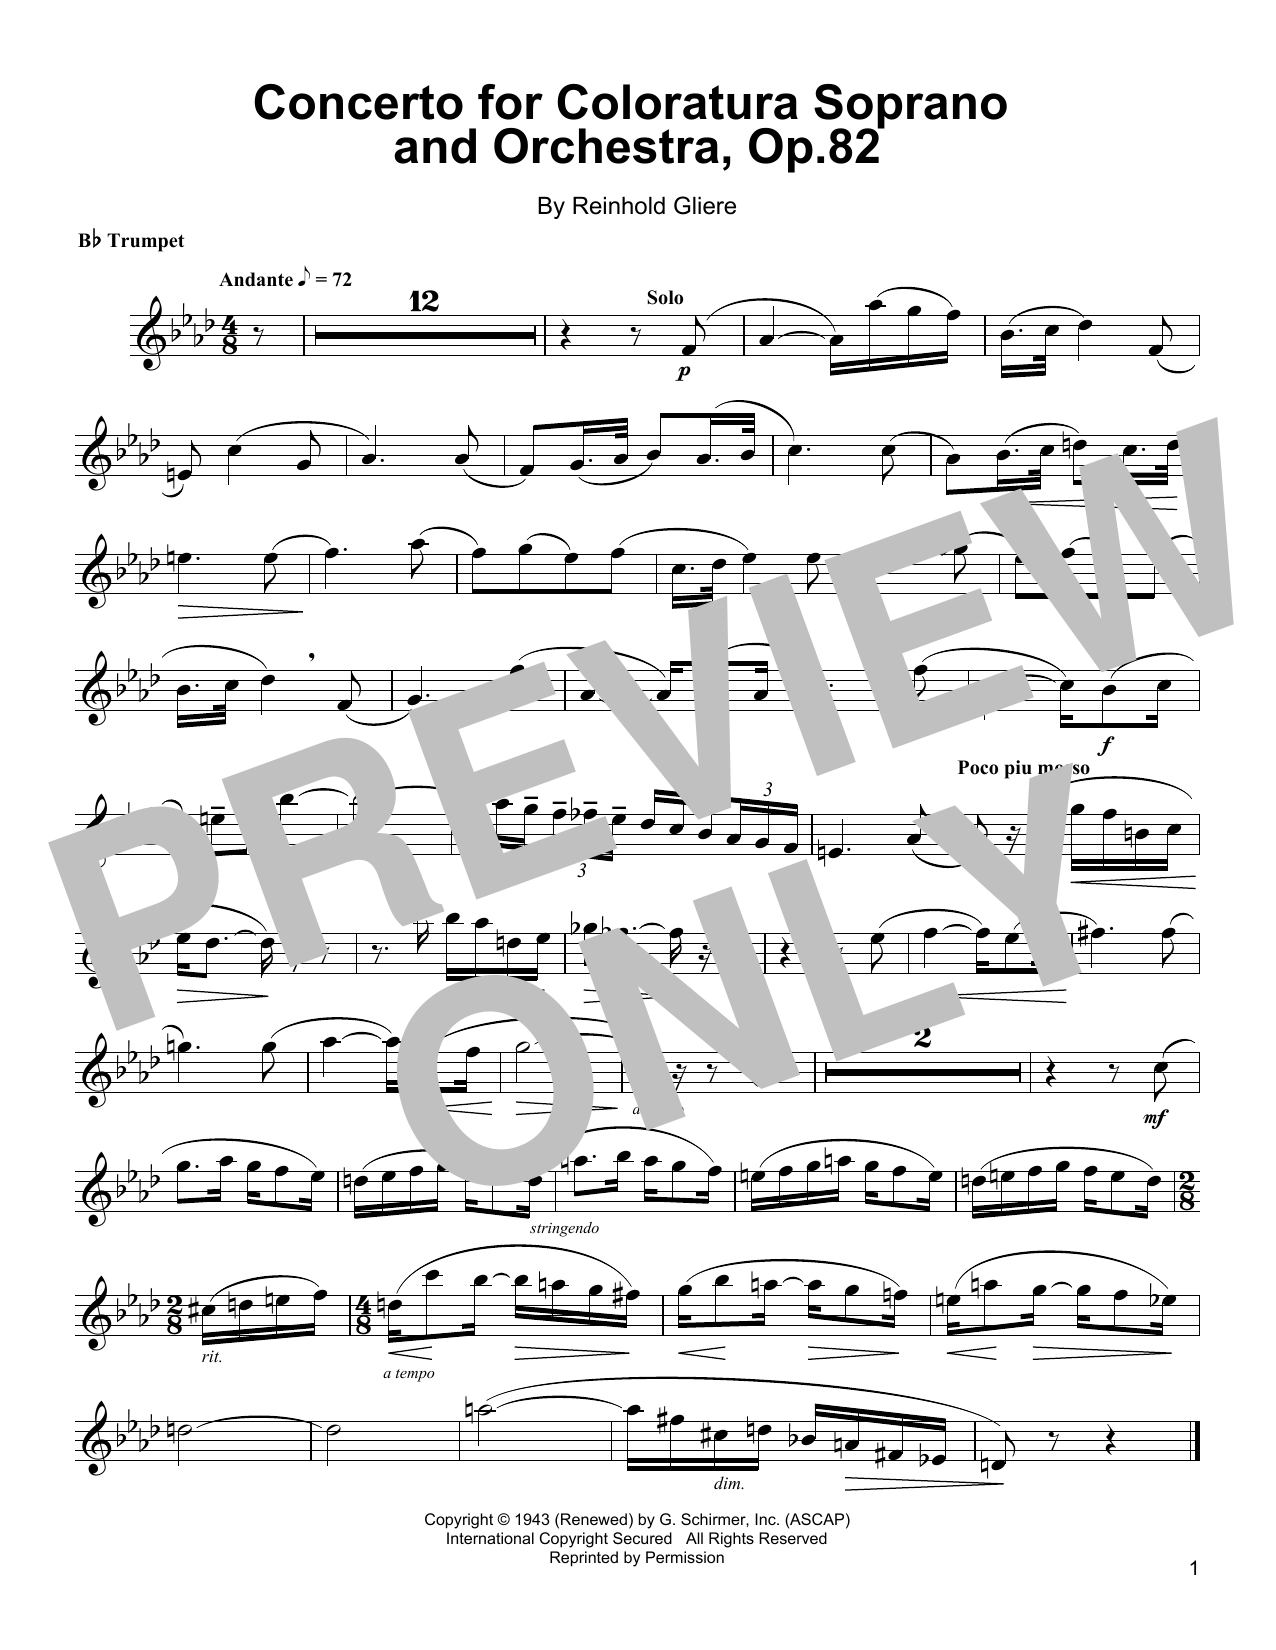 Concerto For Coloratura Soprano And Orchestra, Op. 82 Sheet Music